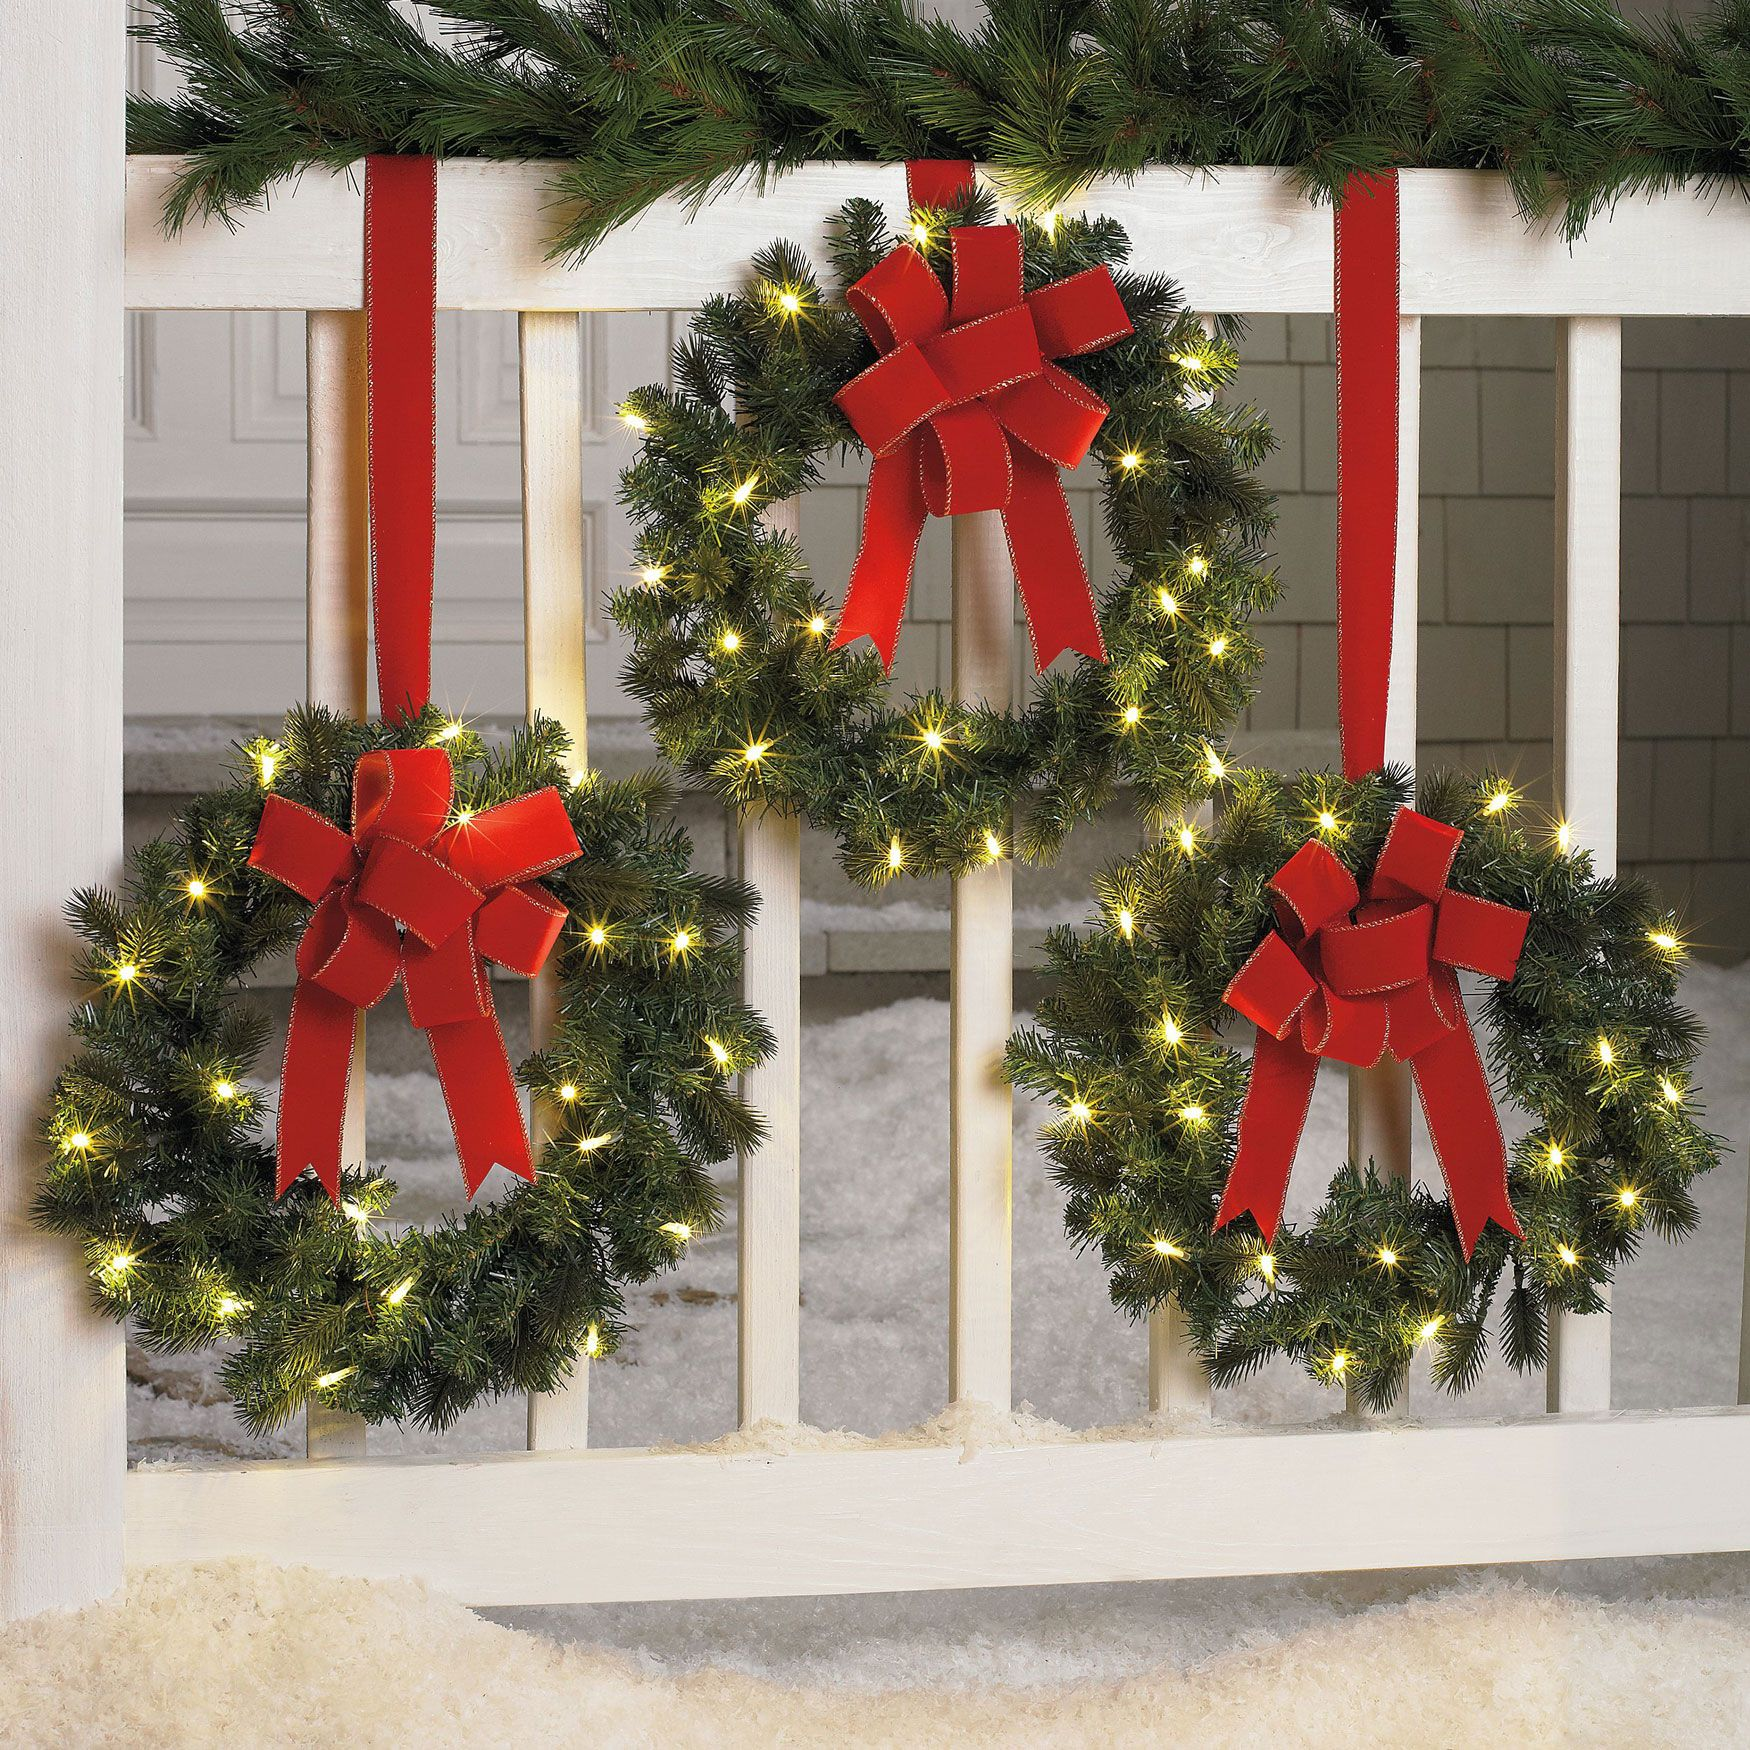 50 Best Outdoor Christmas Decorations For 2017 🎄